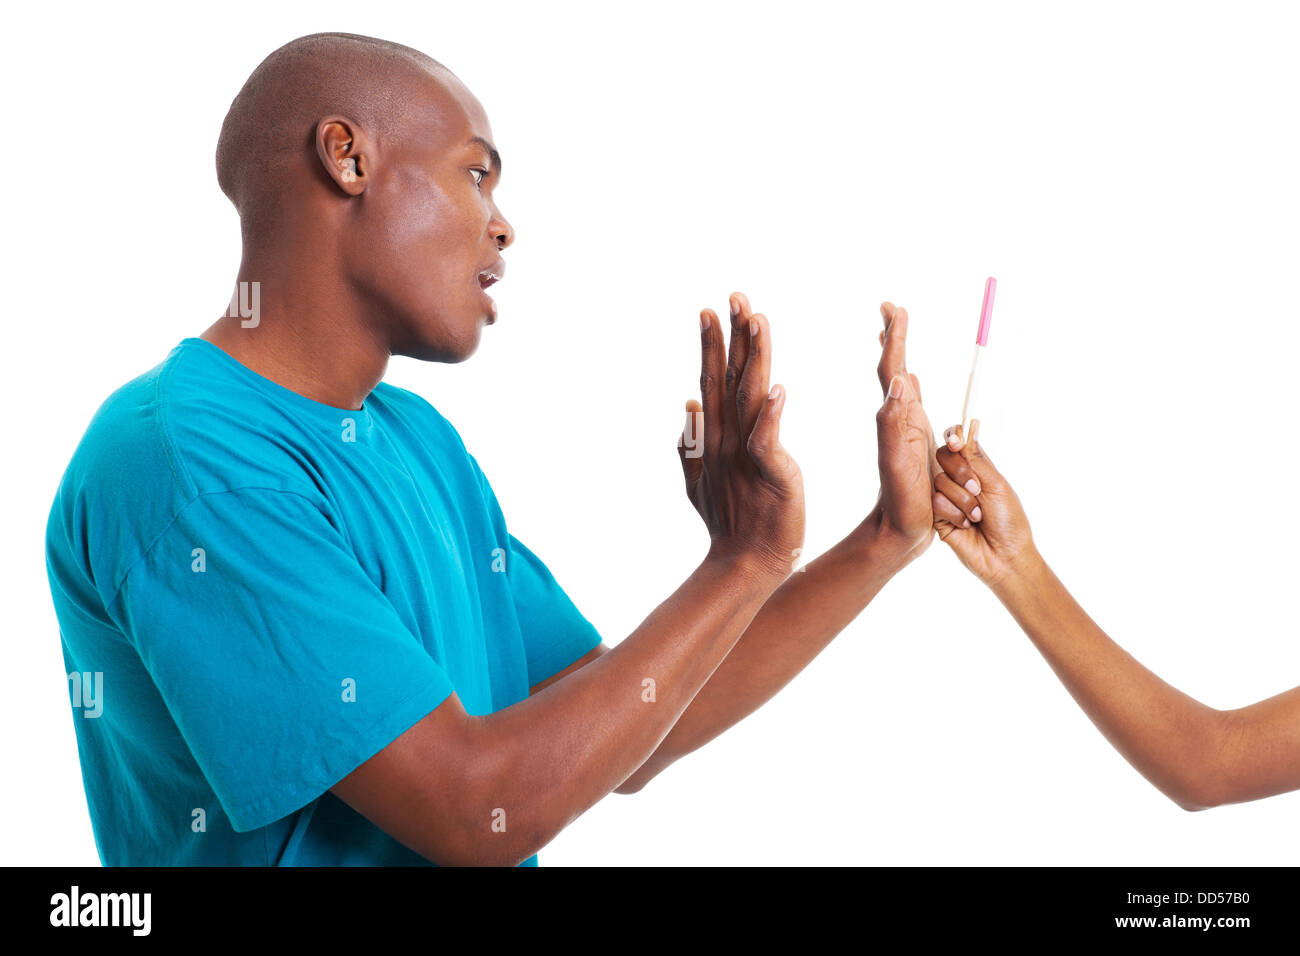 African American man denying girlfriend's pregnancy isolated on white background - Stock Image